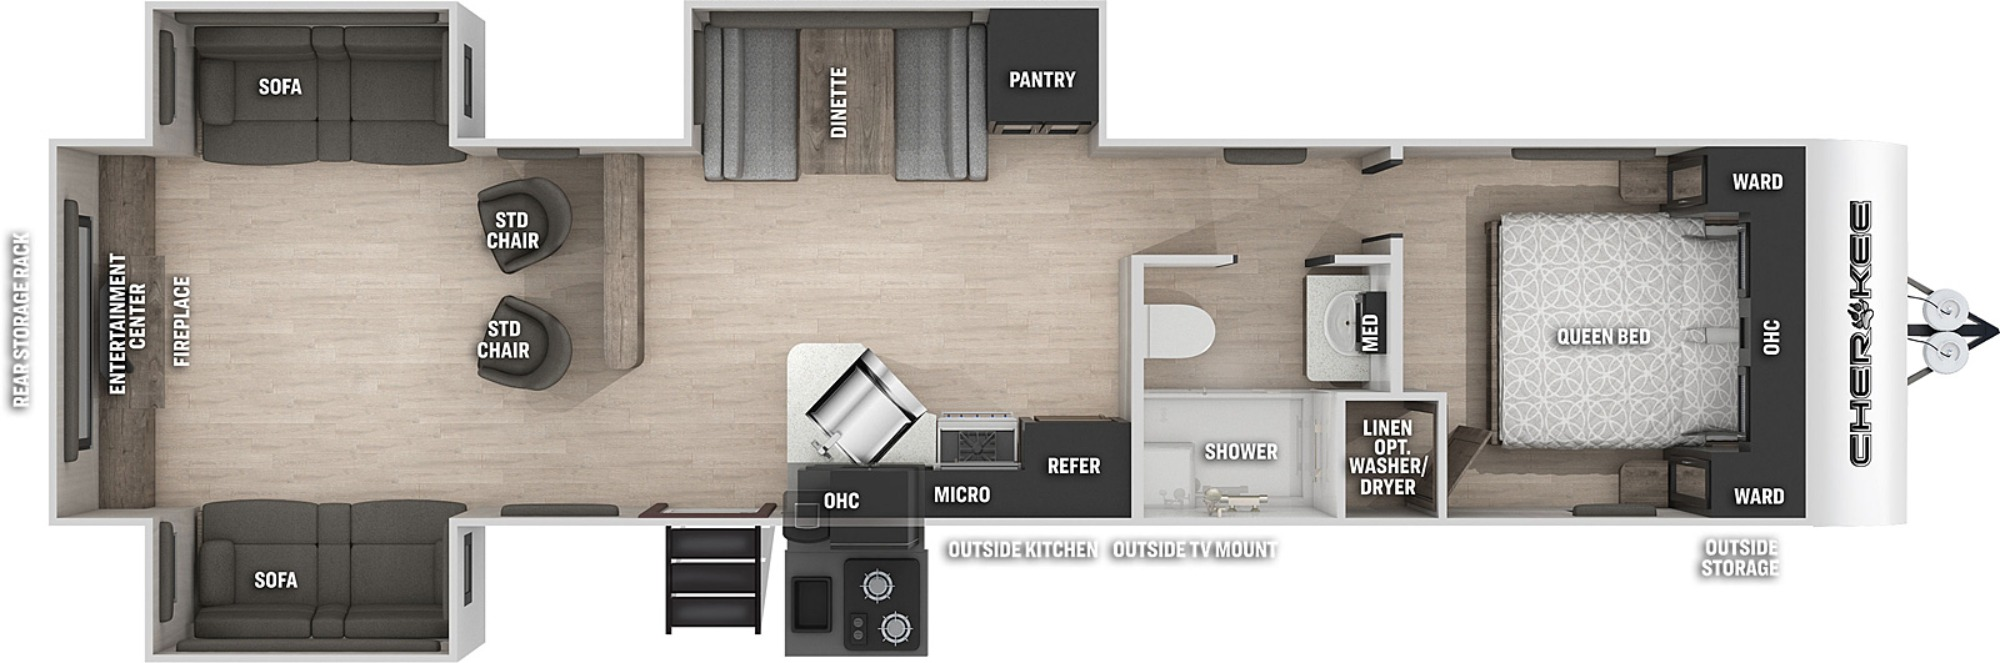 View Floor Plan for 2022 FOREST RIVER CHEROKEE 306MM